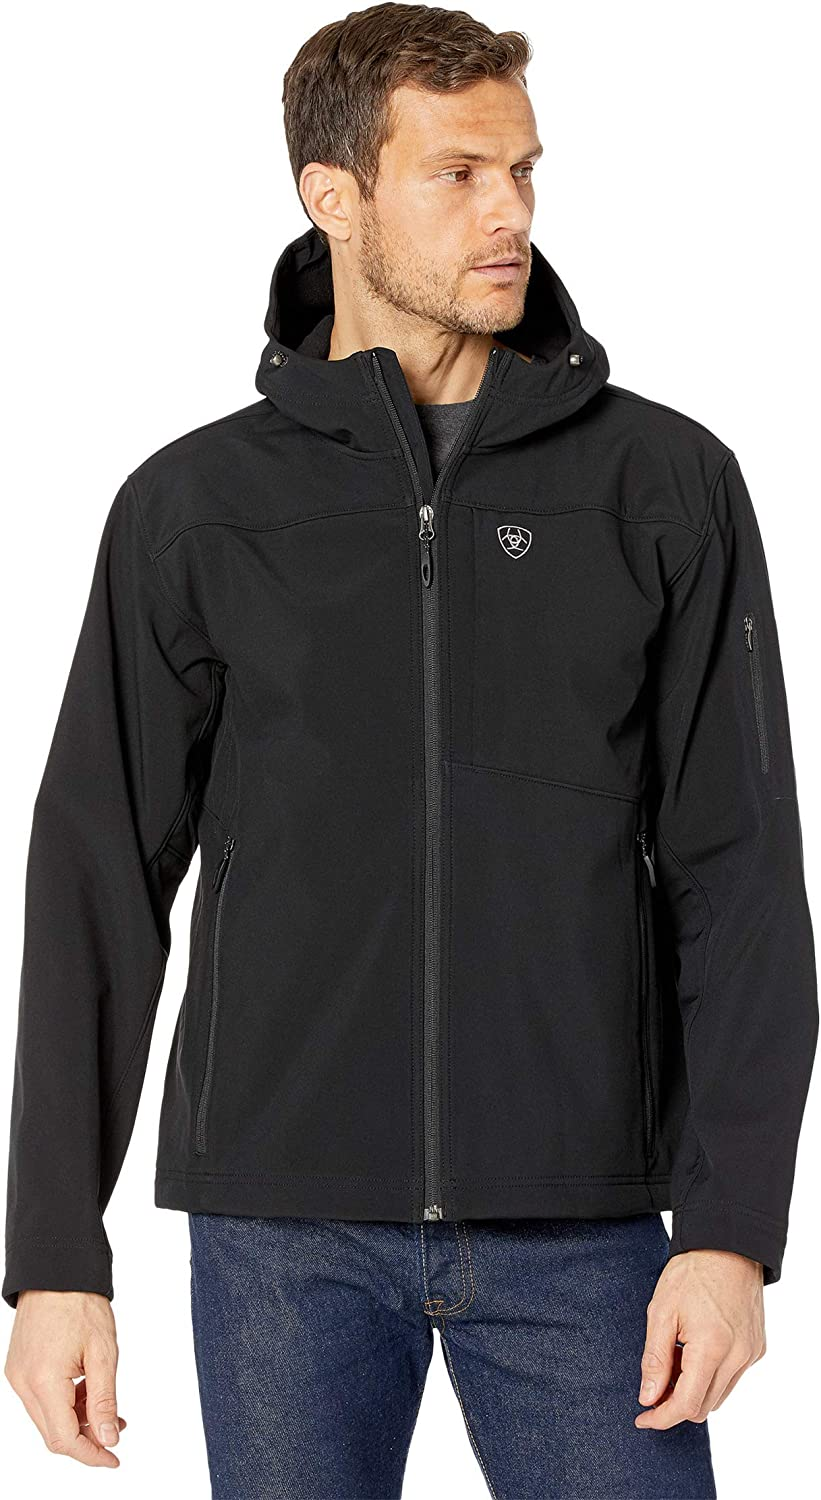 ARIAT Vernon Hooded Softshell Water Resistant Jacket